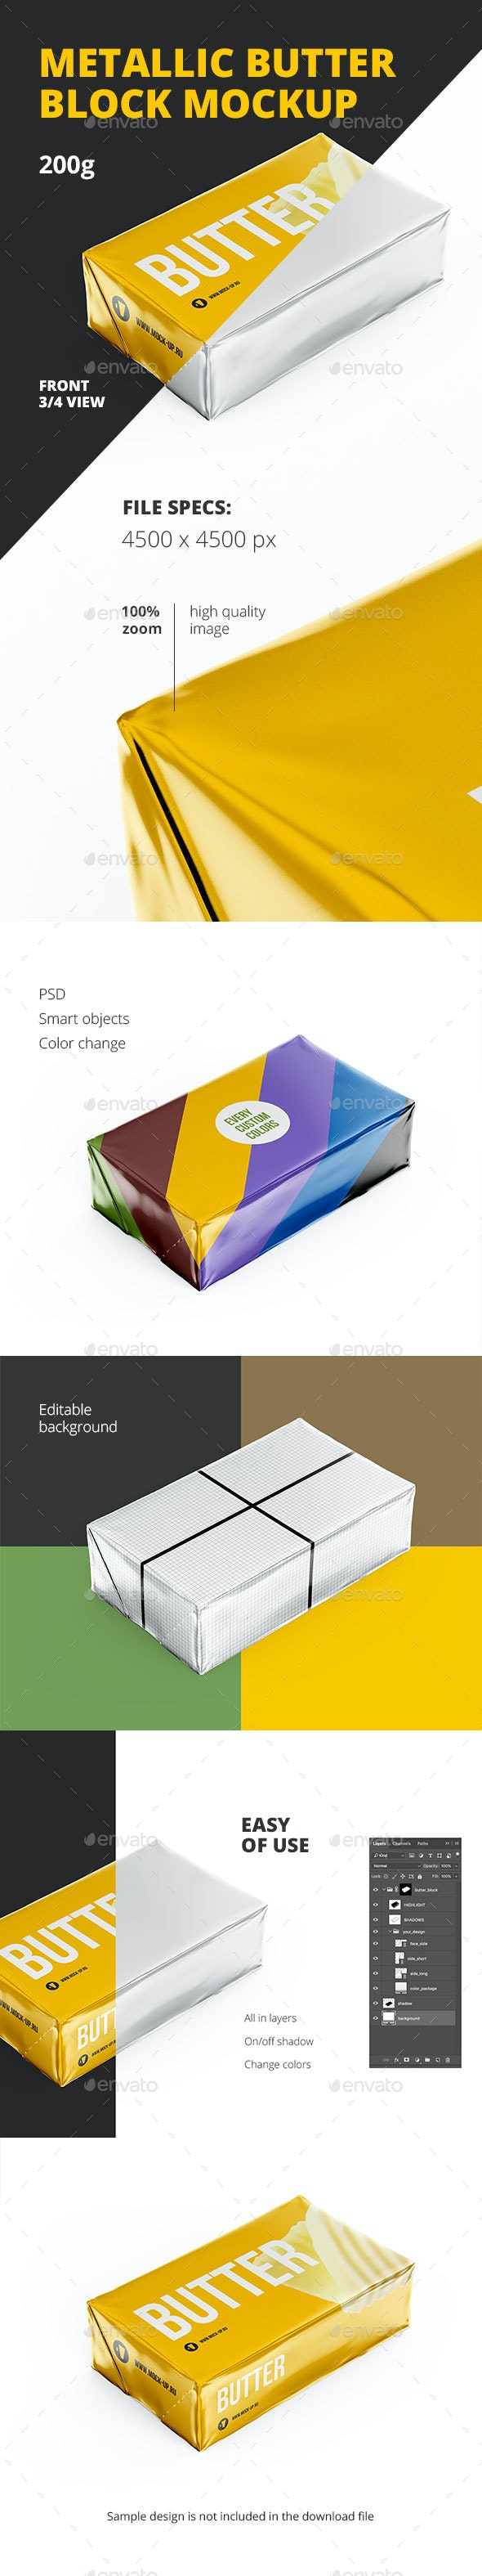 Butter Block Mockup 200g - Food and Drink Packaging